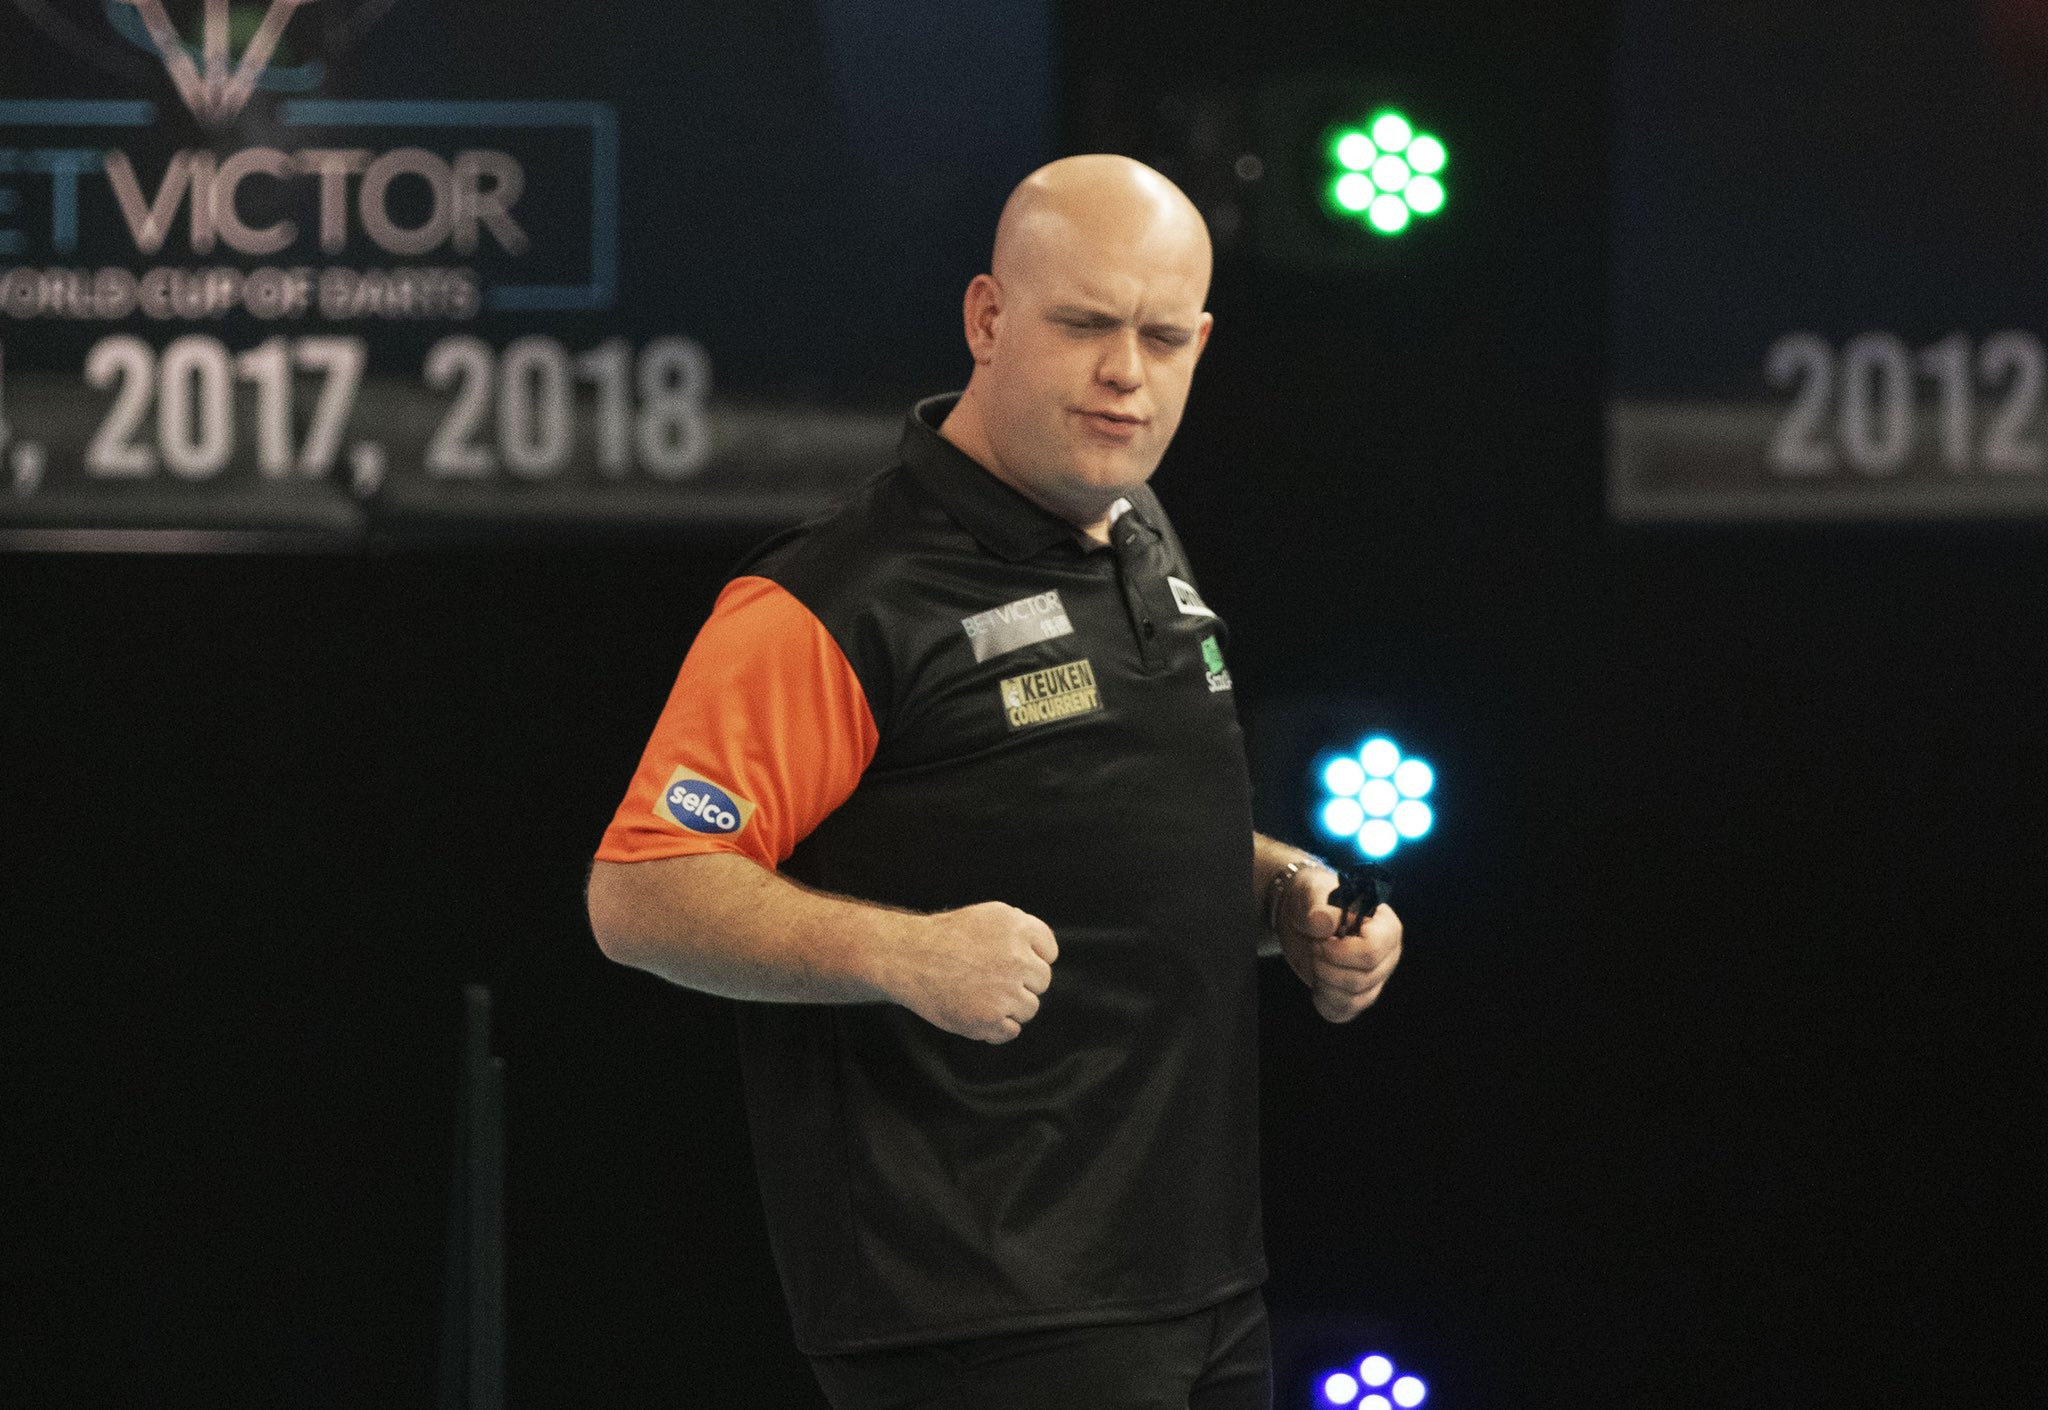 Wales knock Scotland out to reach World Cup of Darts quarter-finals